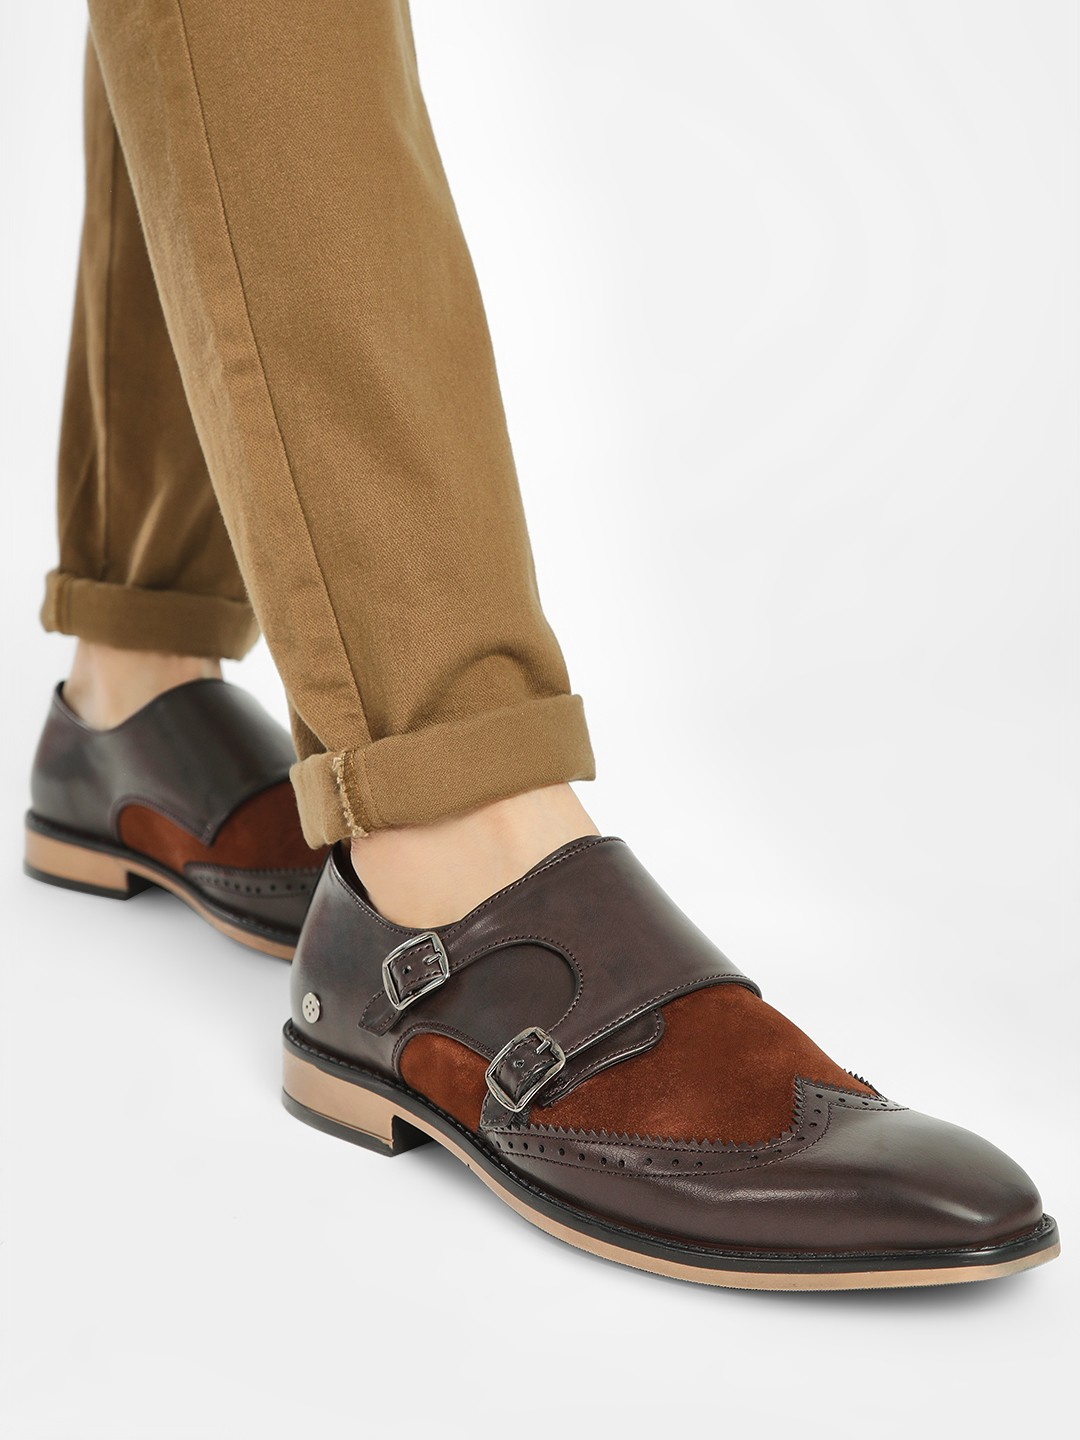 Mr Button Brown Brogue Monk Strap Formal Shoes 1